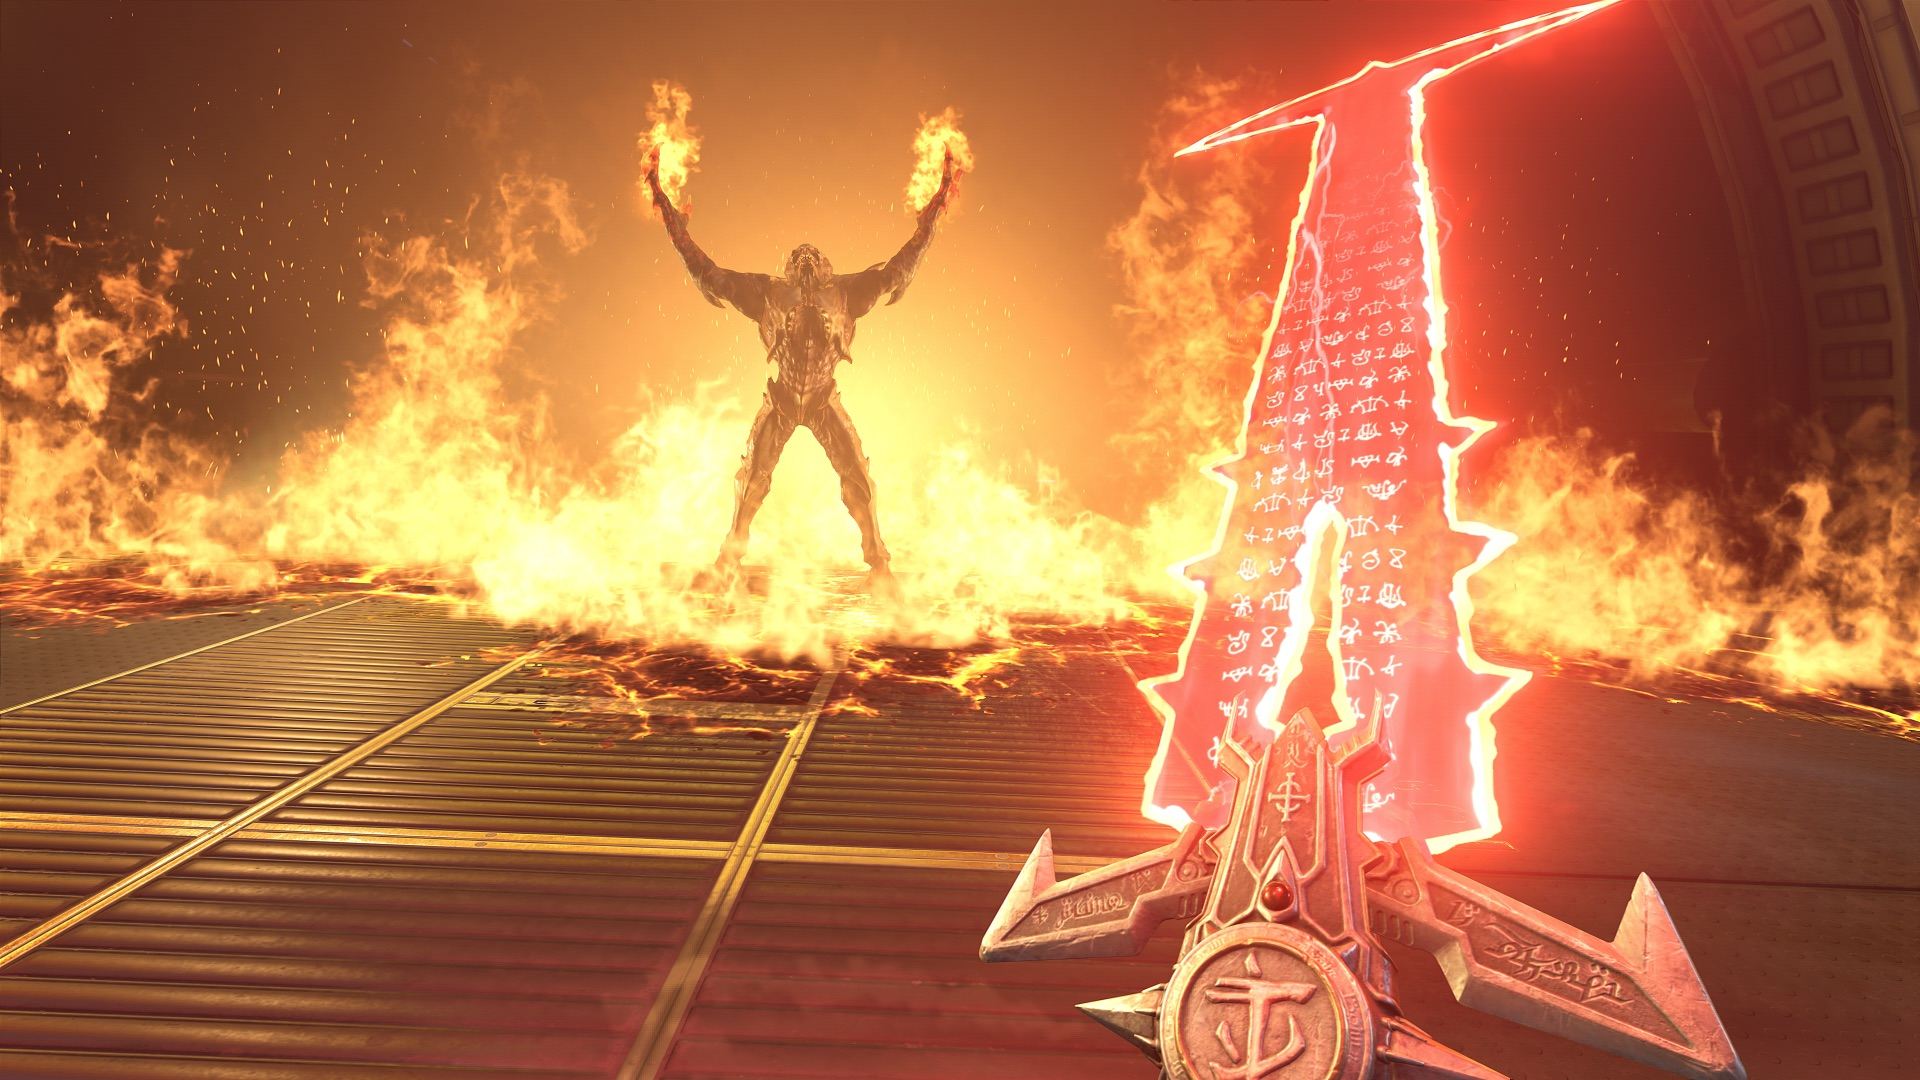 Doom Eternal gameplay shown off at QuakeCon